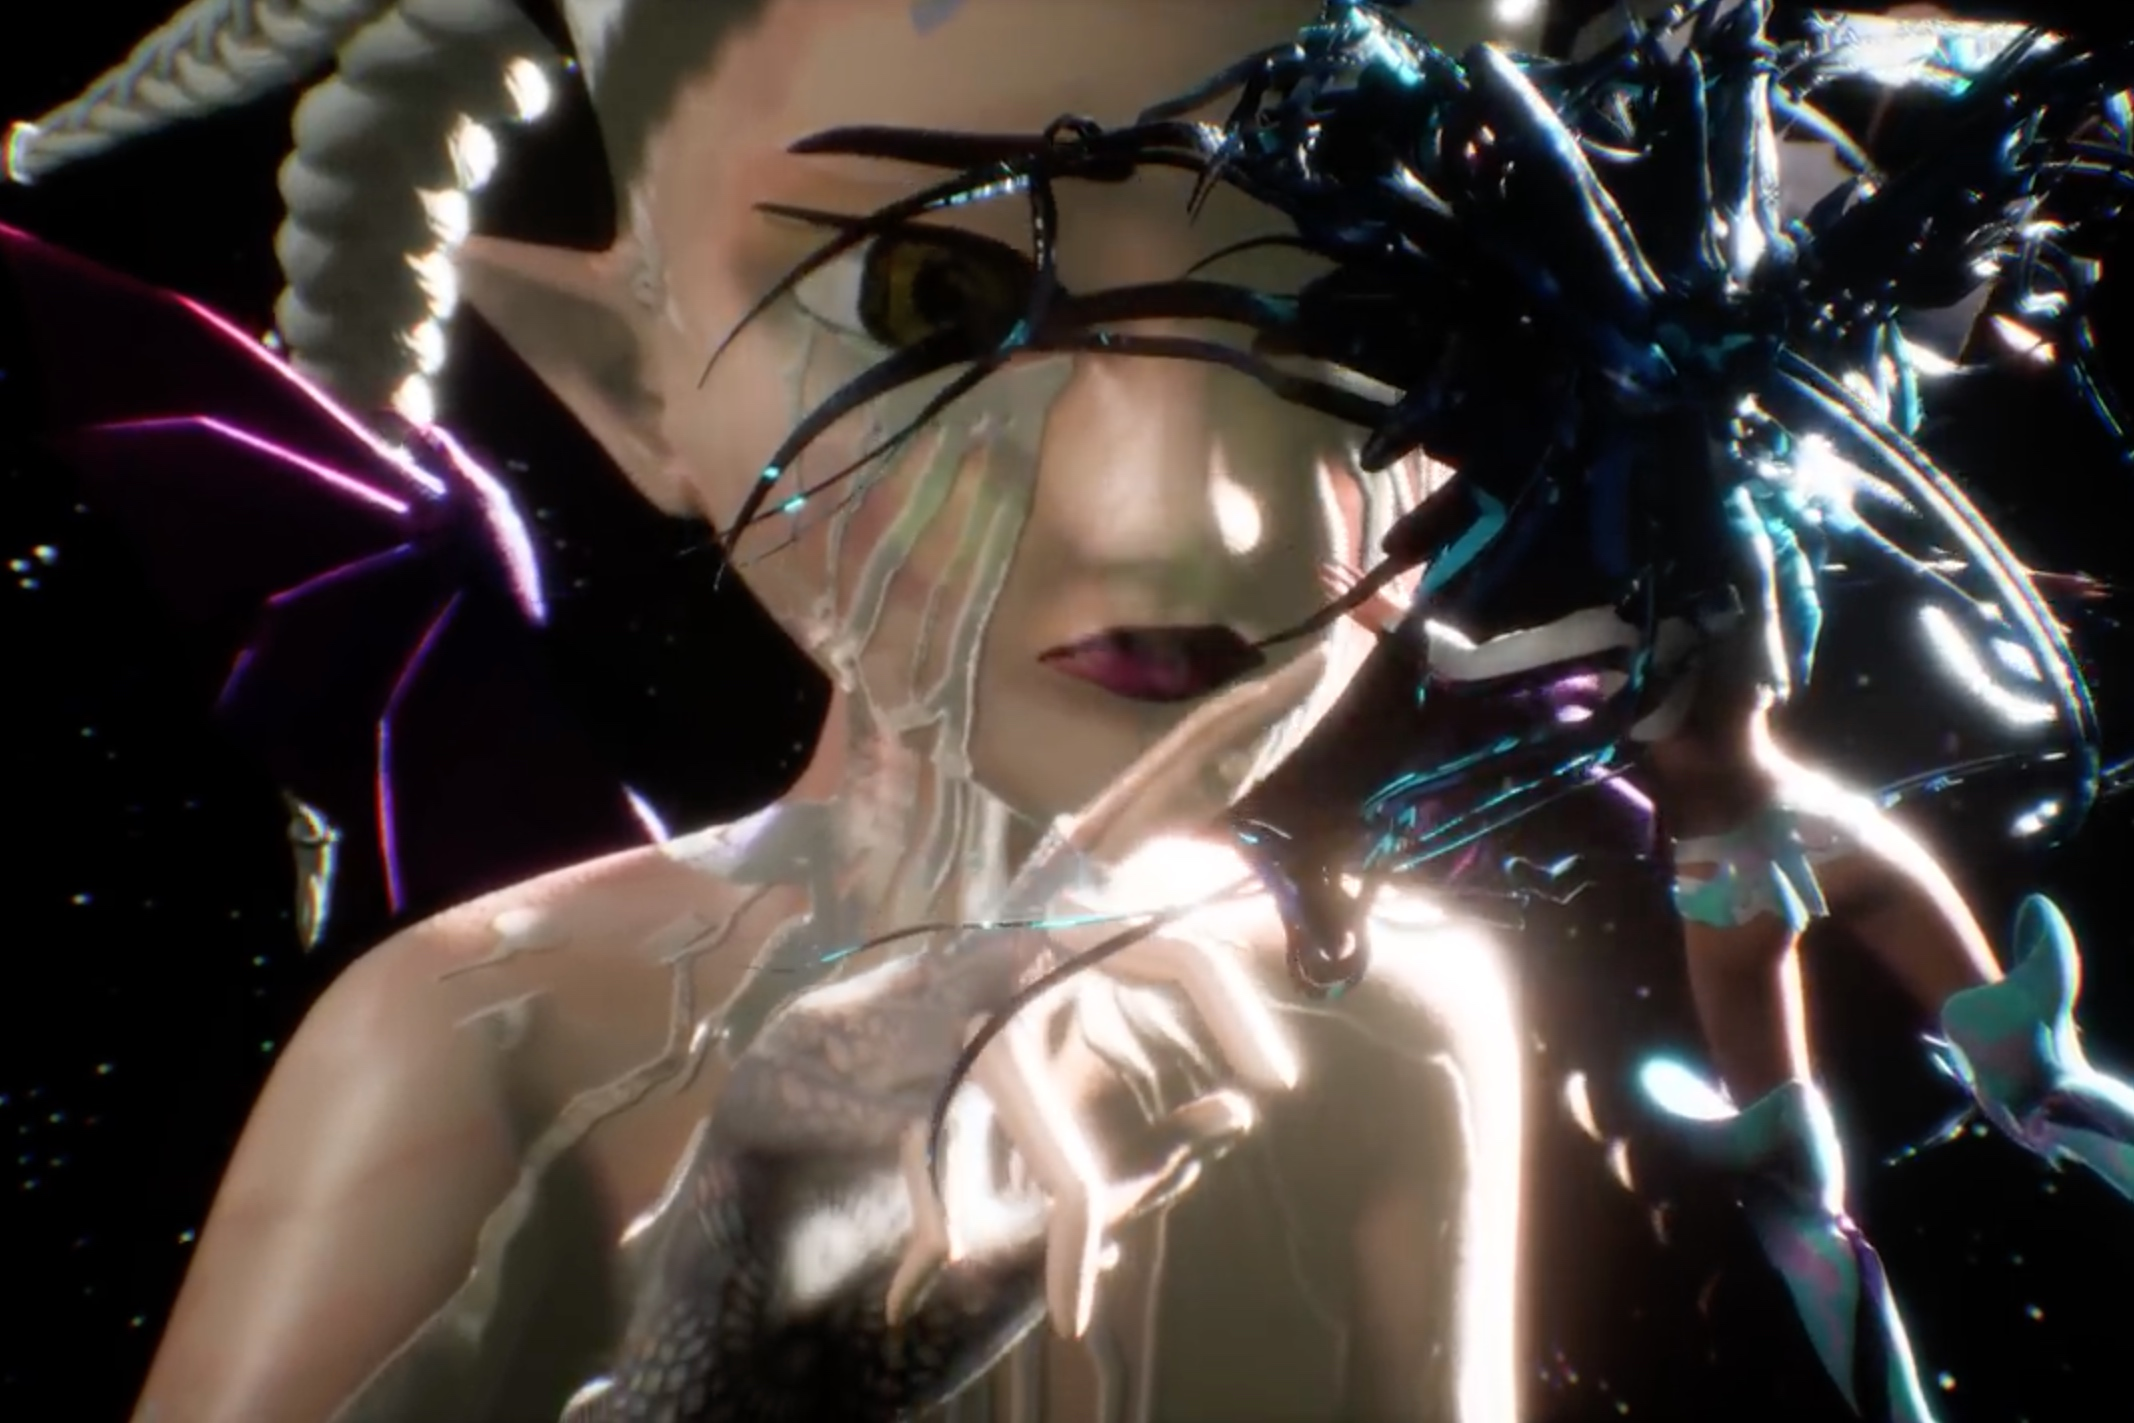 Grimes Becomes an Anime Cyborg in Ashnikko Collaboration 'Cry'